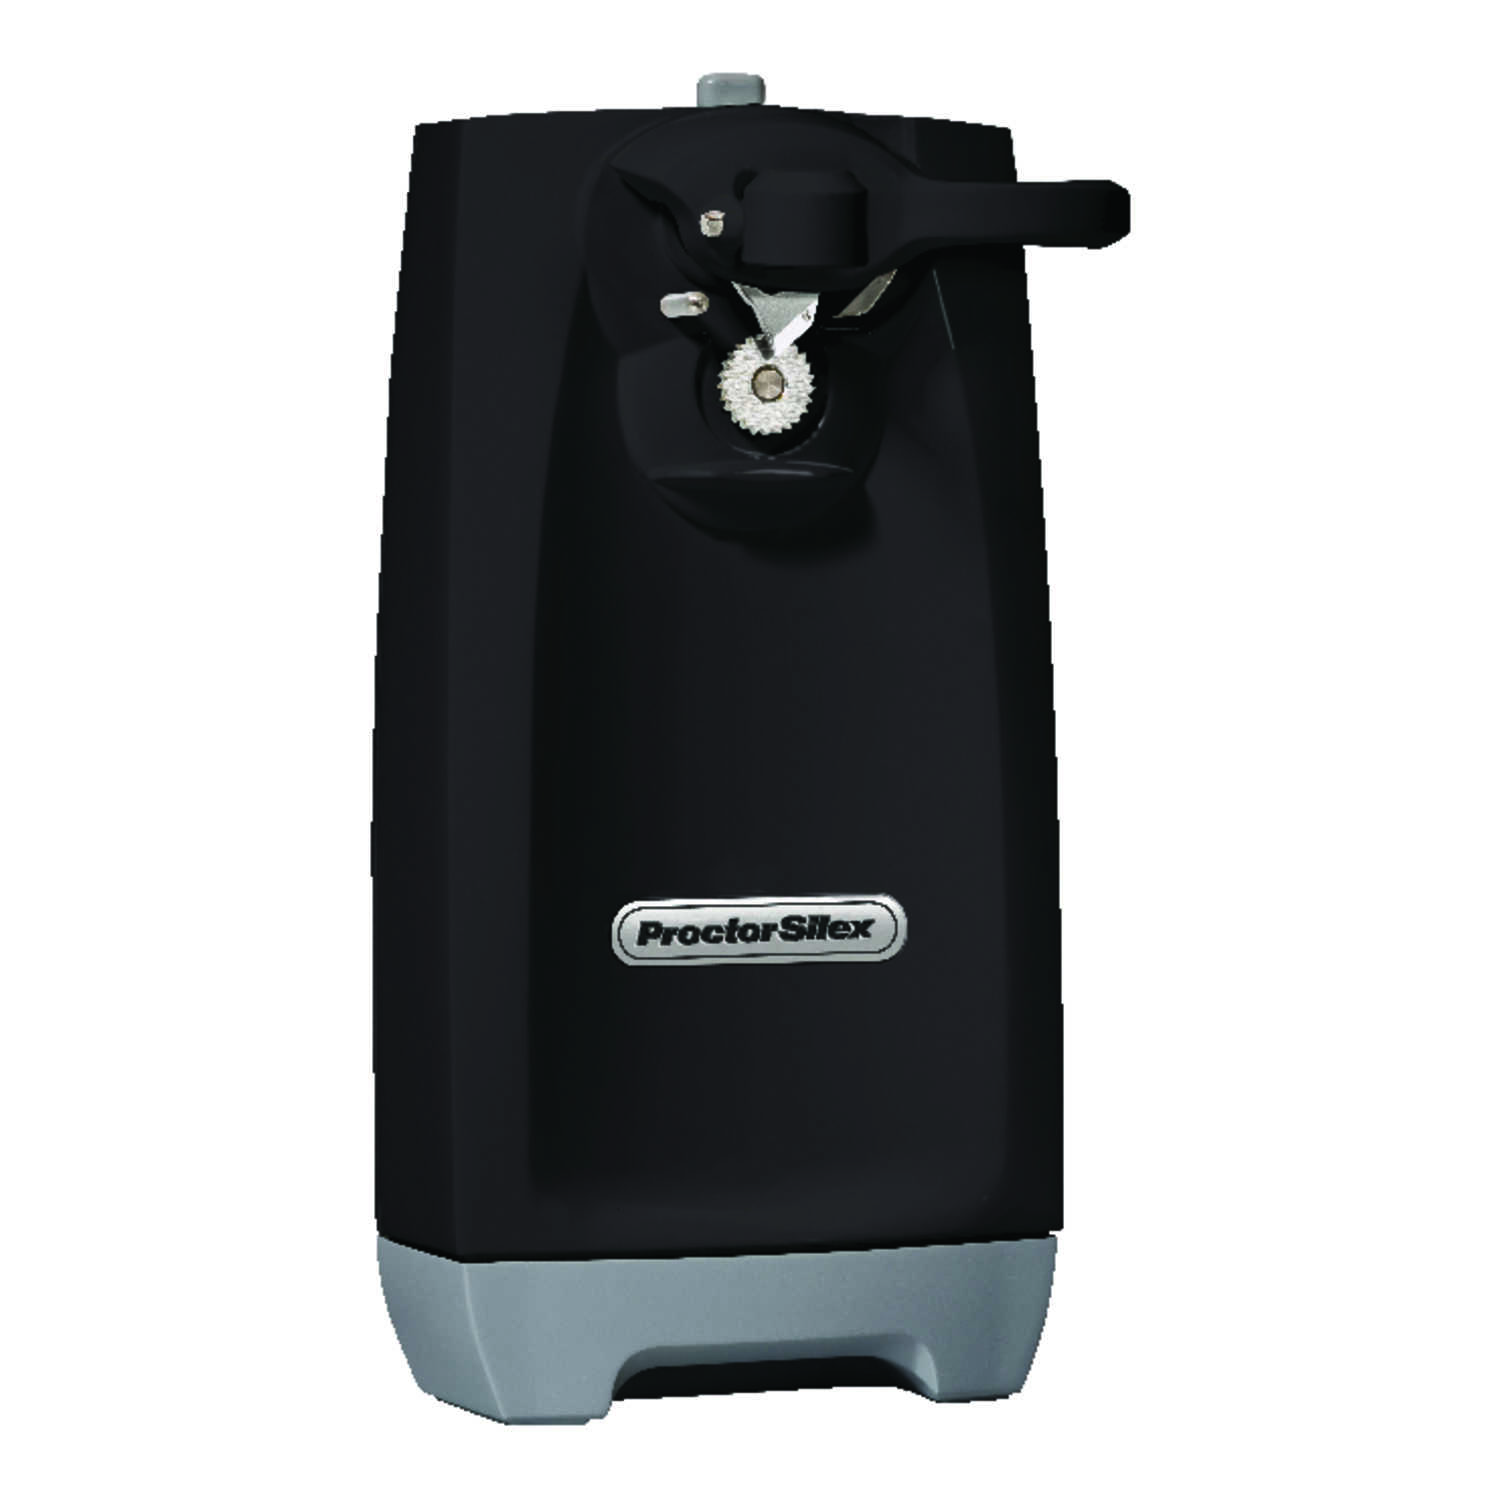 Proctor Silex  Black  Magnetic Lid Holder Electric Can Opener